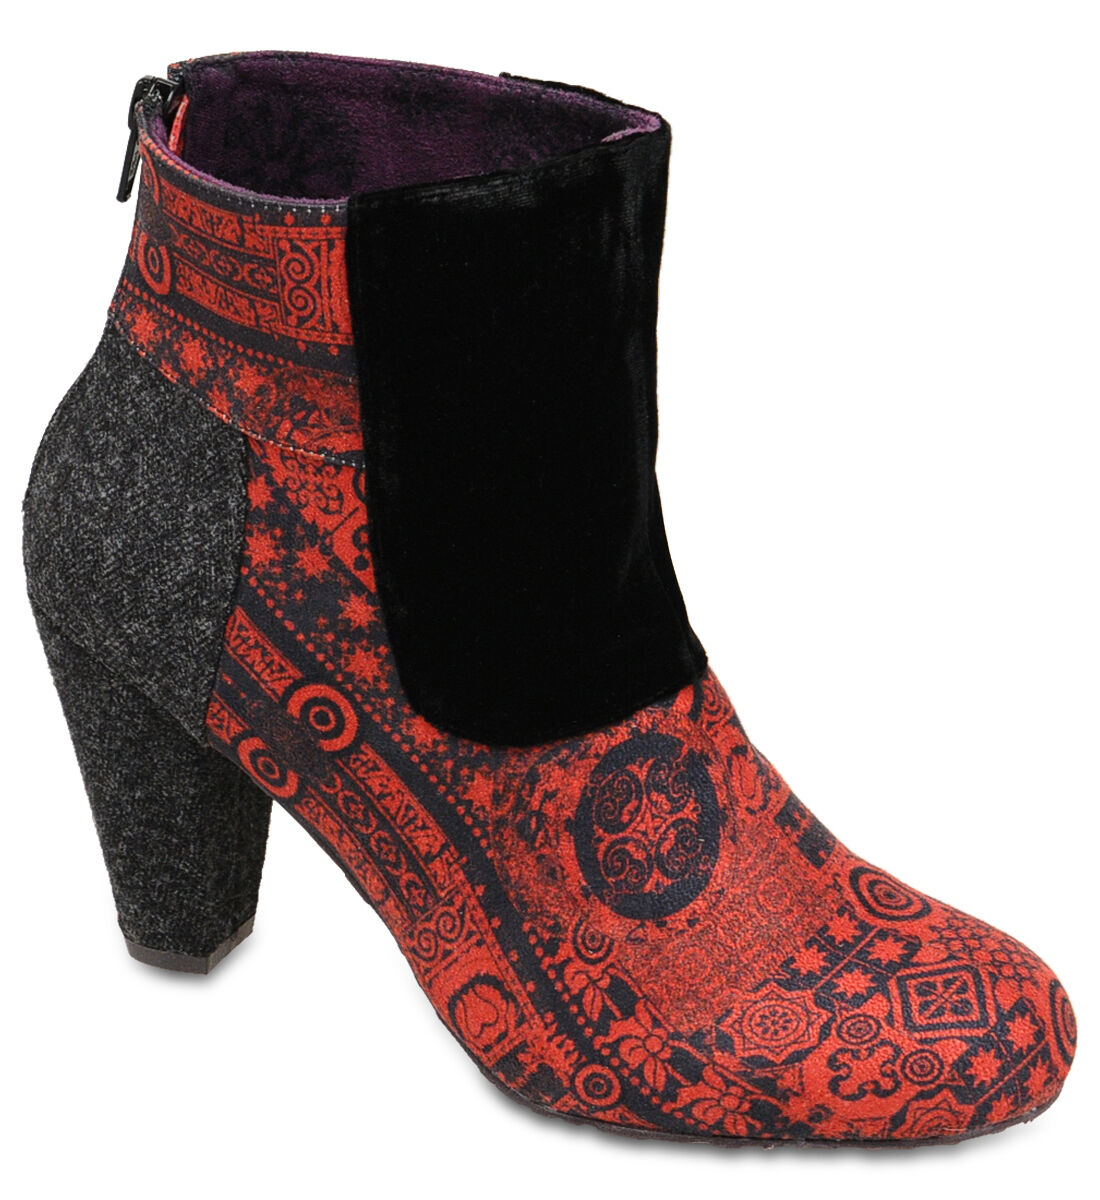 Desigual Authentic Women's Floral Synthetic Corrasco Ankle Boots 27as359-3092